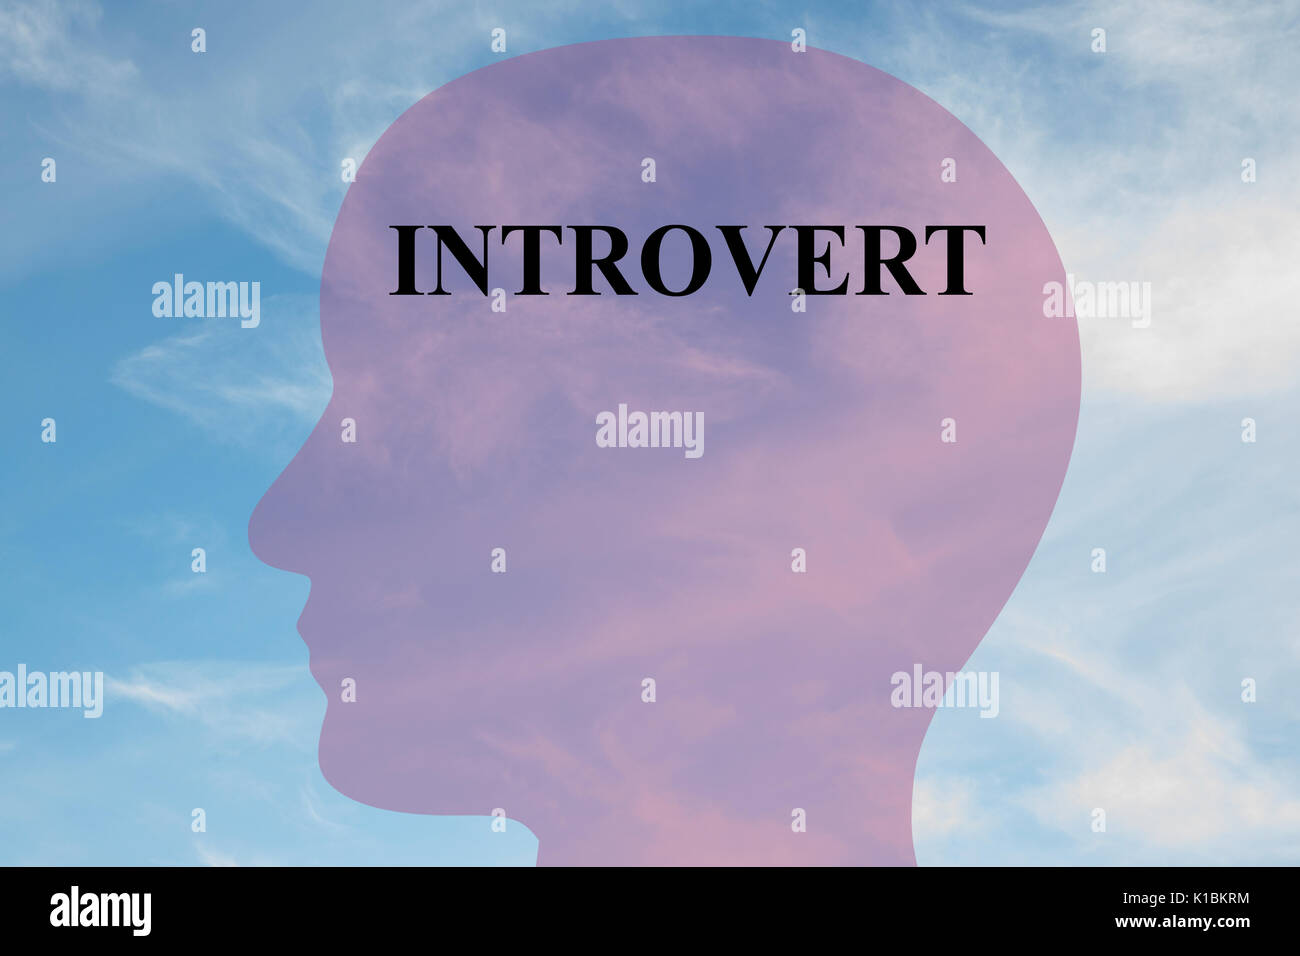 Render illustration of Introvert title on head silhouette, with cloudy sky as a background. - Stock Image